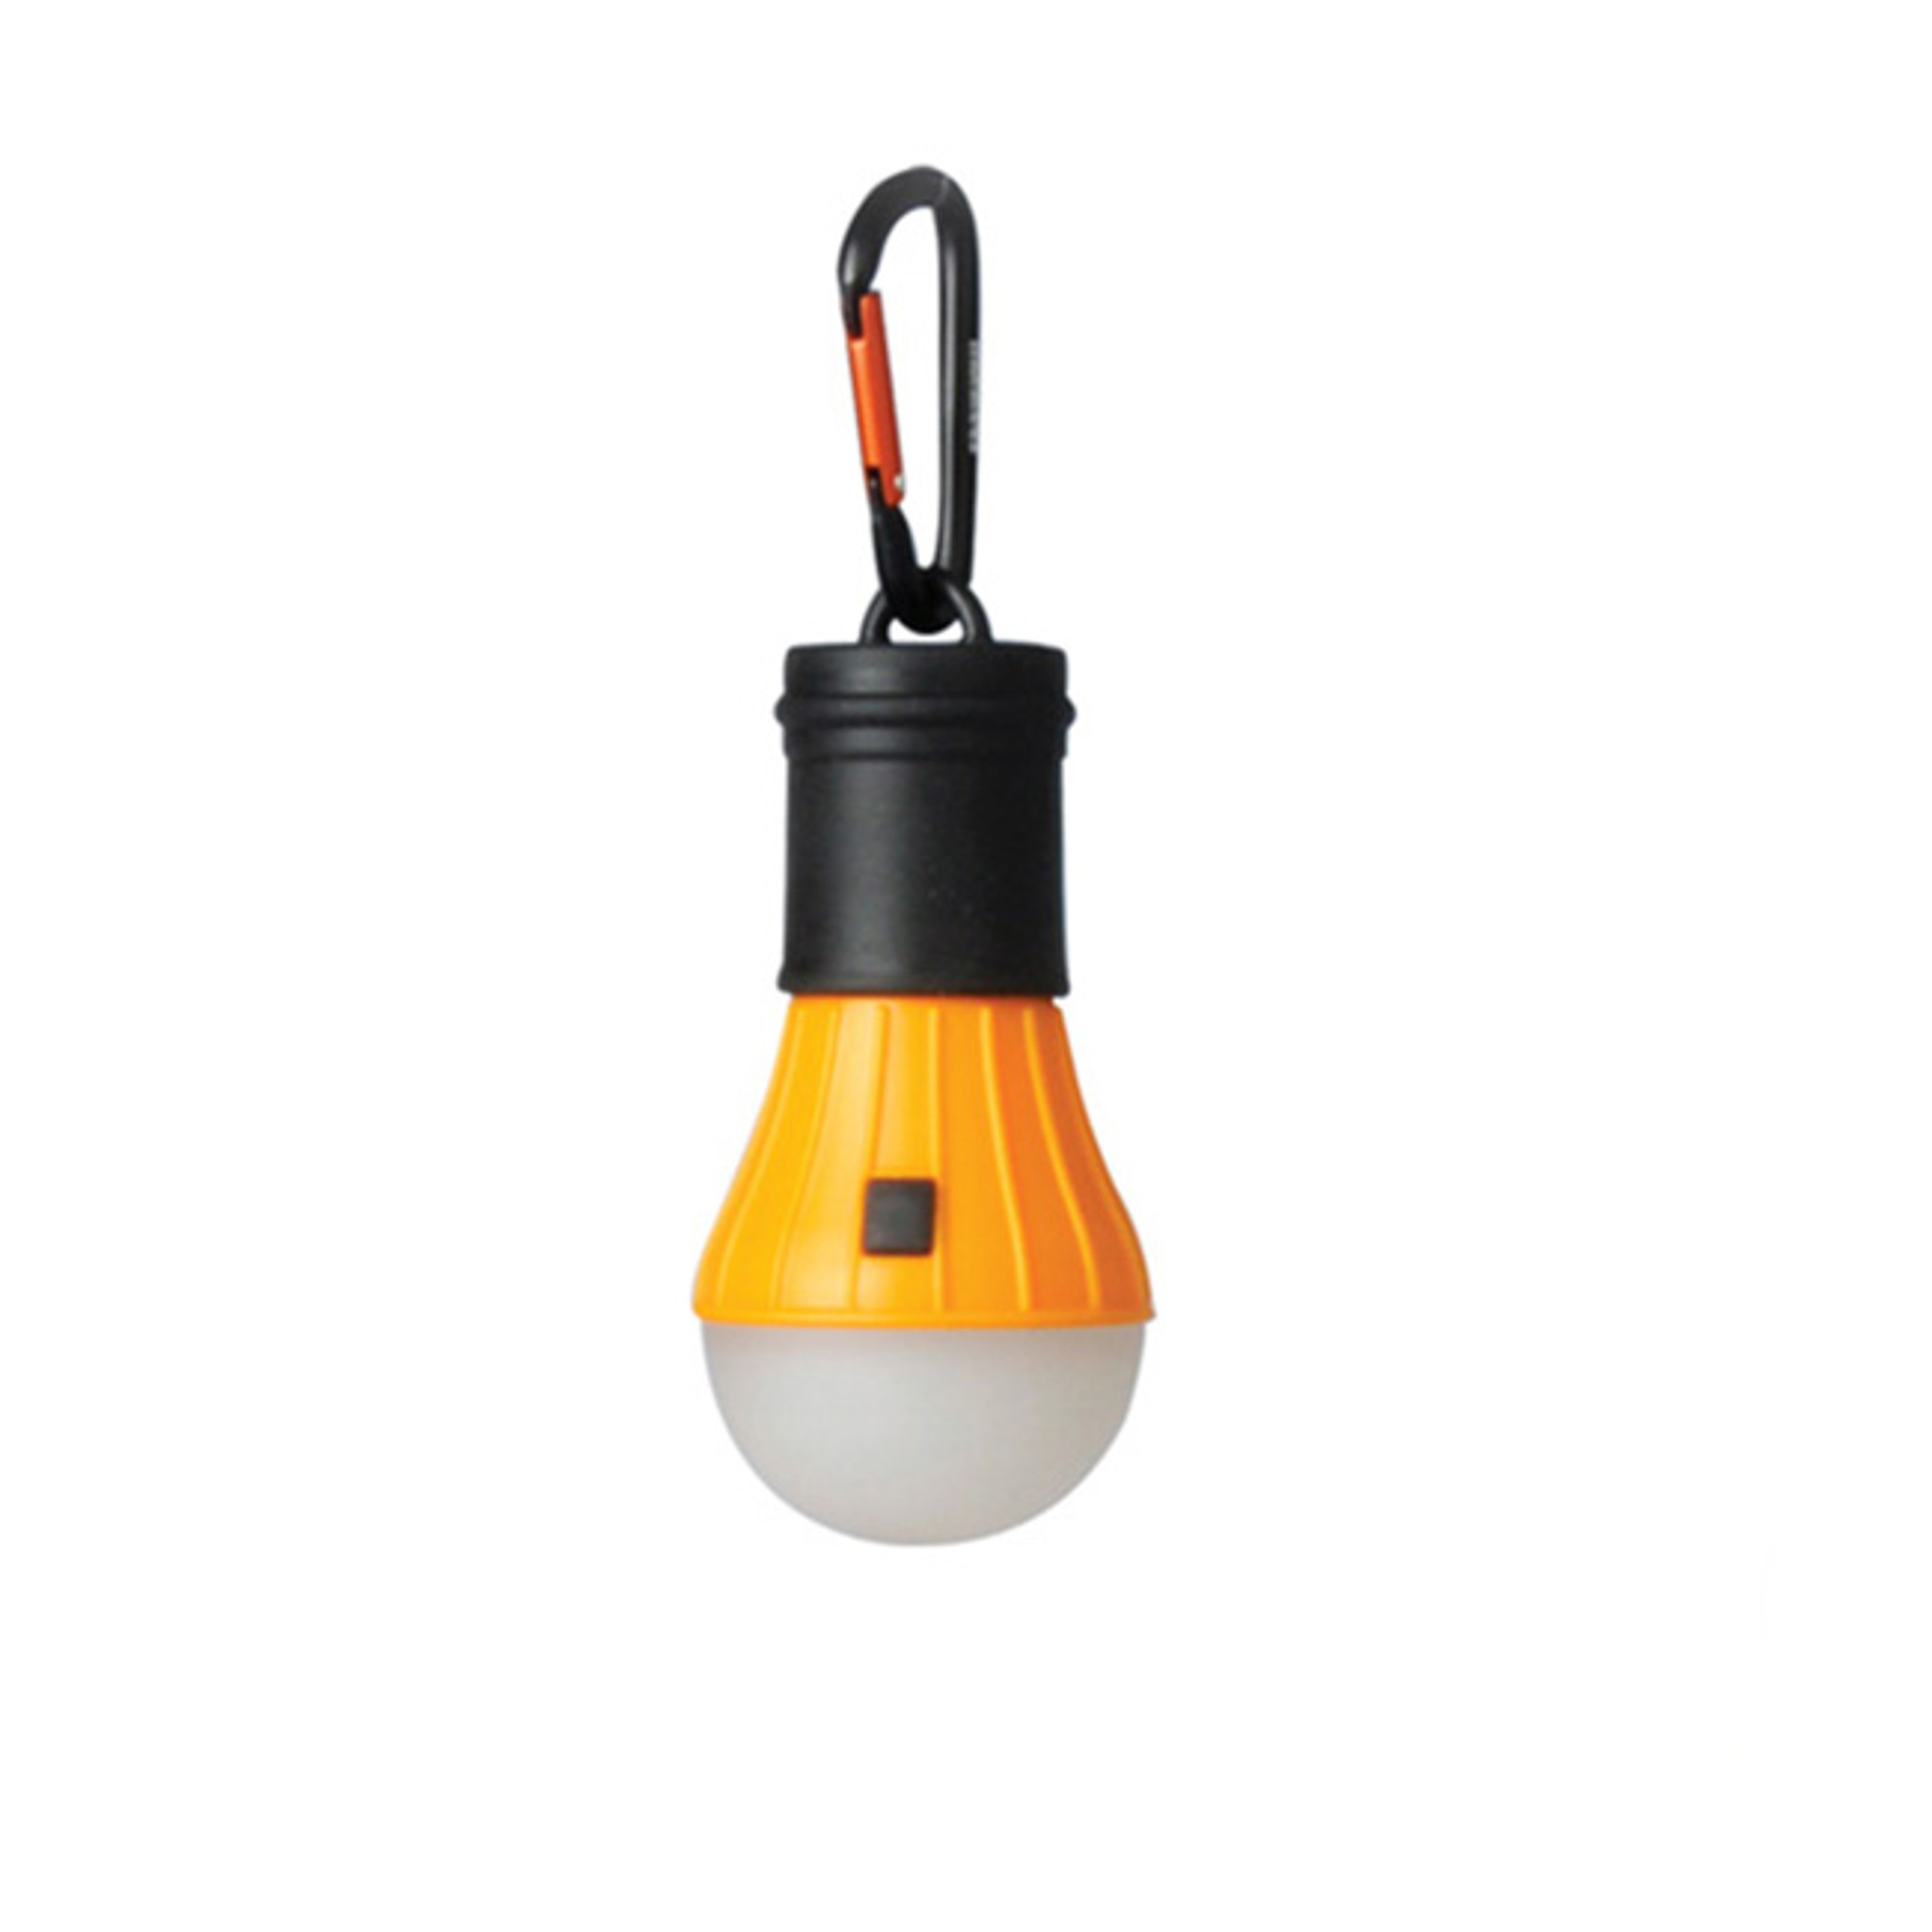 3 LED Portable Camping Tent Lamp Emergency Hiking Outdoor Light Lantern Bulb US